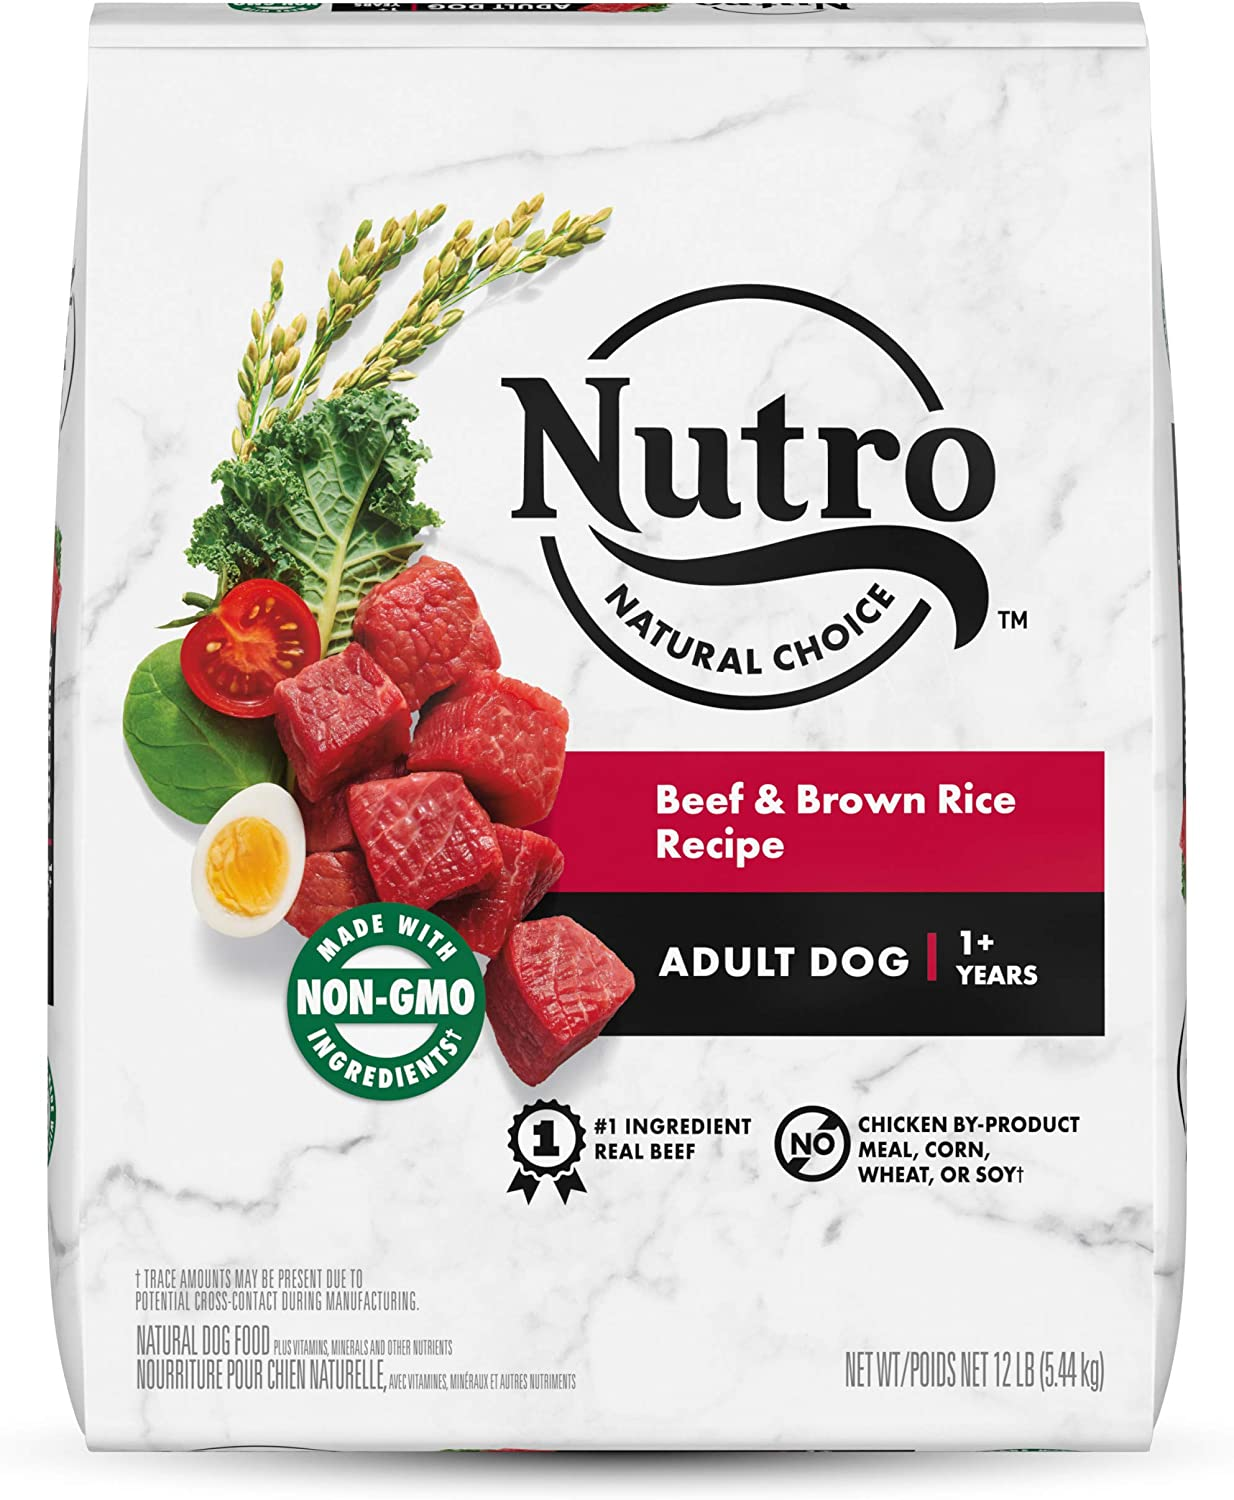 NUTRO Natural Choice Adult Dry Dog Food, Beef & Brown Rice Recipe Dog Kibble, 12 lb. Bag